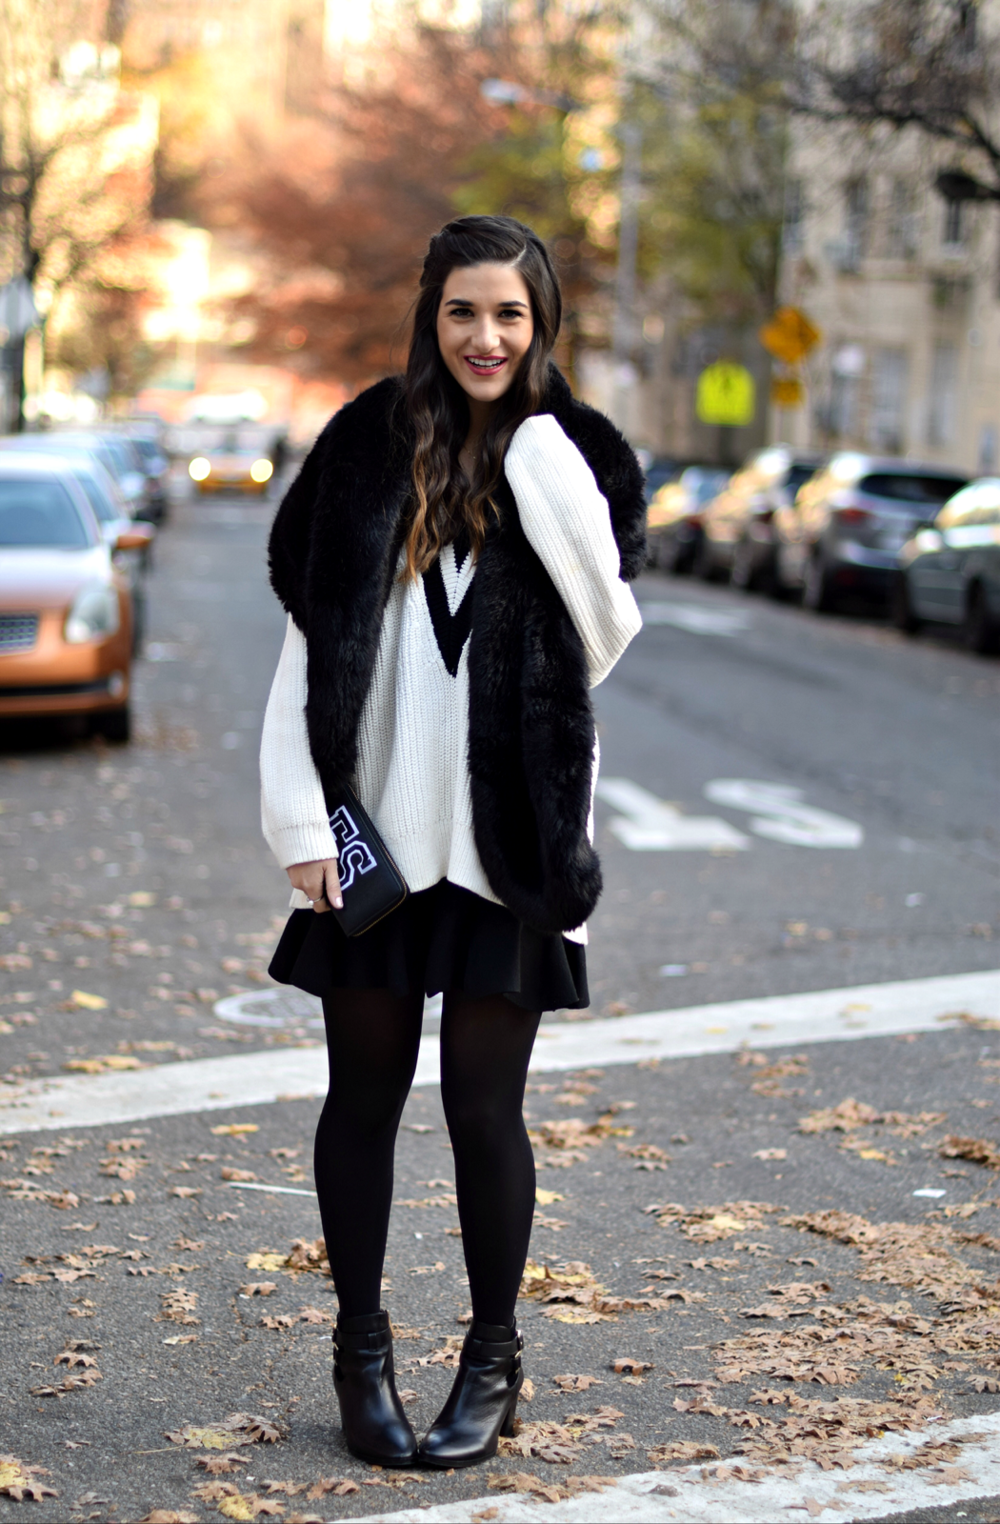 Chunky Varsity Knit Fur Stole Louboutins & Love Fashion Blog Esther Santer NYC Street Style Blogger Sweater Girl Women Photoshoot Model Shoes Black Booties Louise et Cie Nordstrom Hair Swag H&M Mini Skirt Neutrals OOTD Outfit Tights Shop Winter Wear.jpg